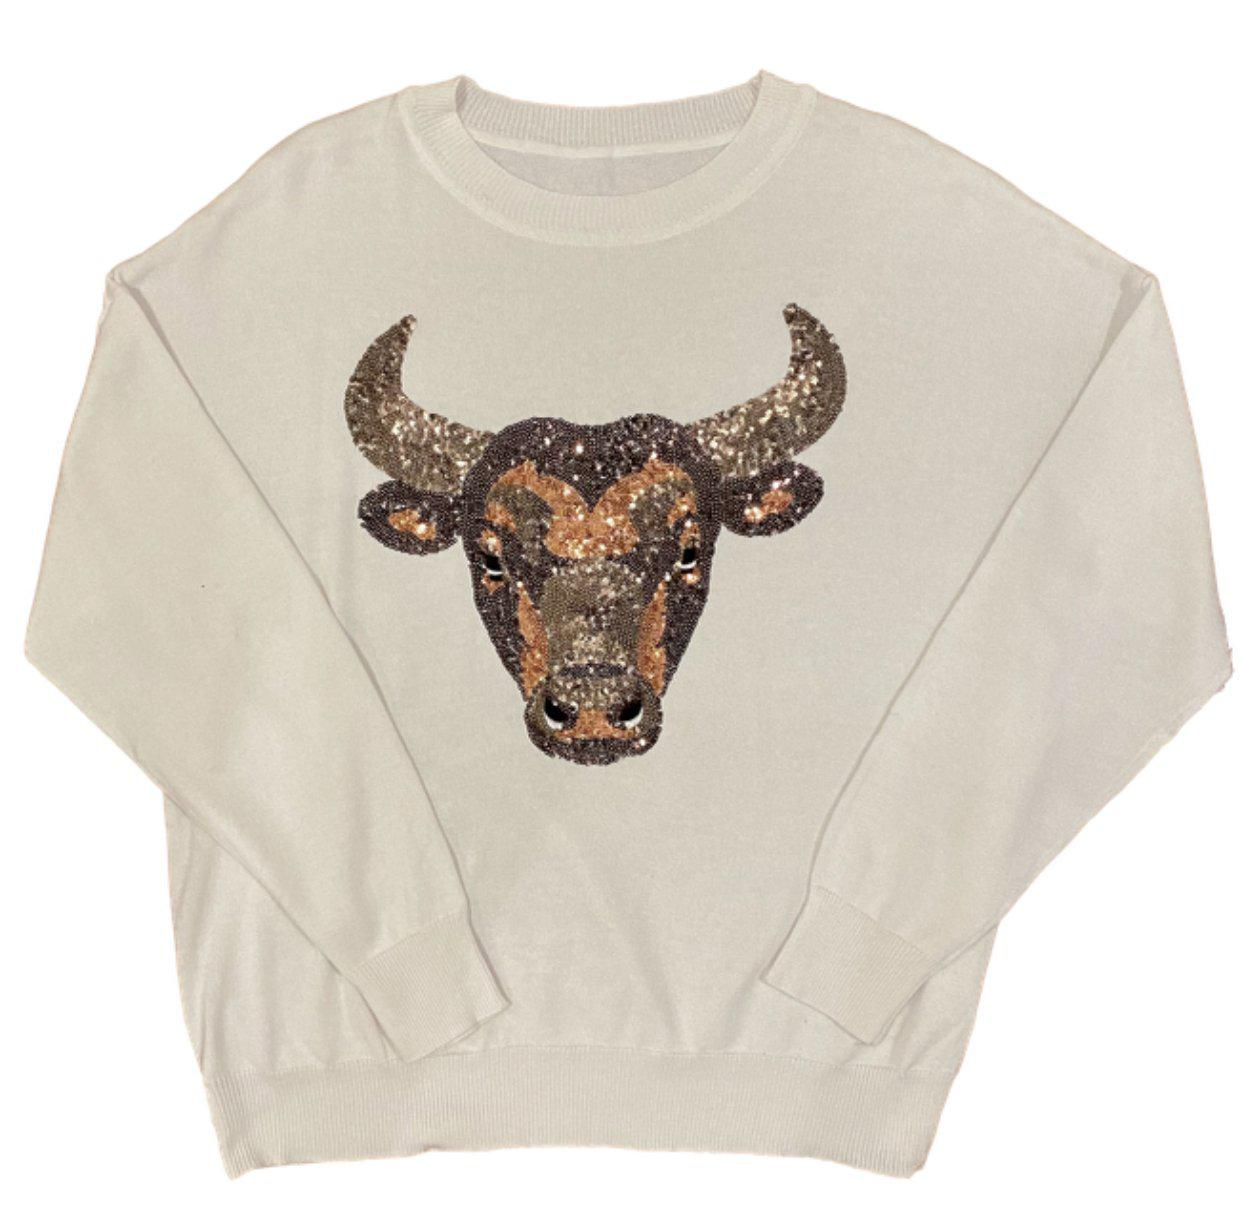 Lightweight Bull Sweater